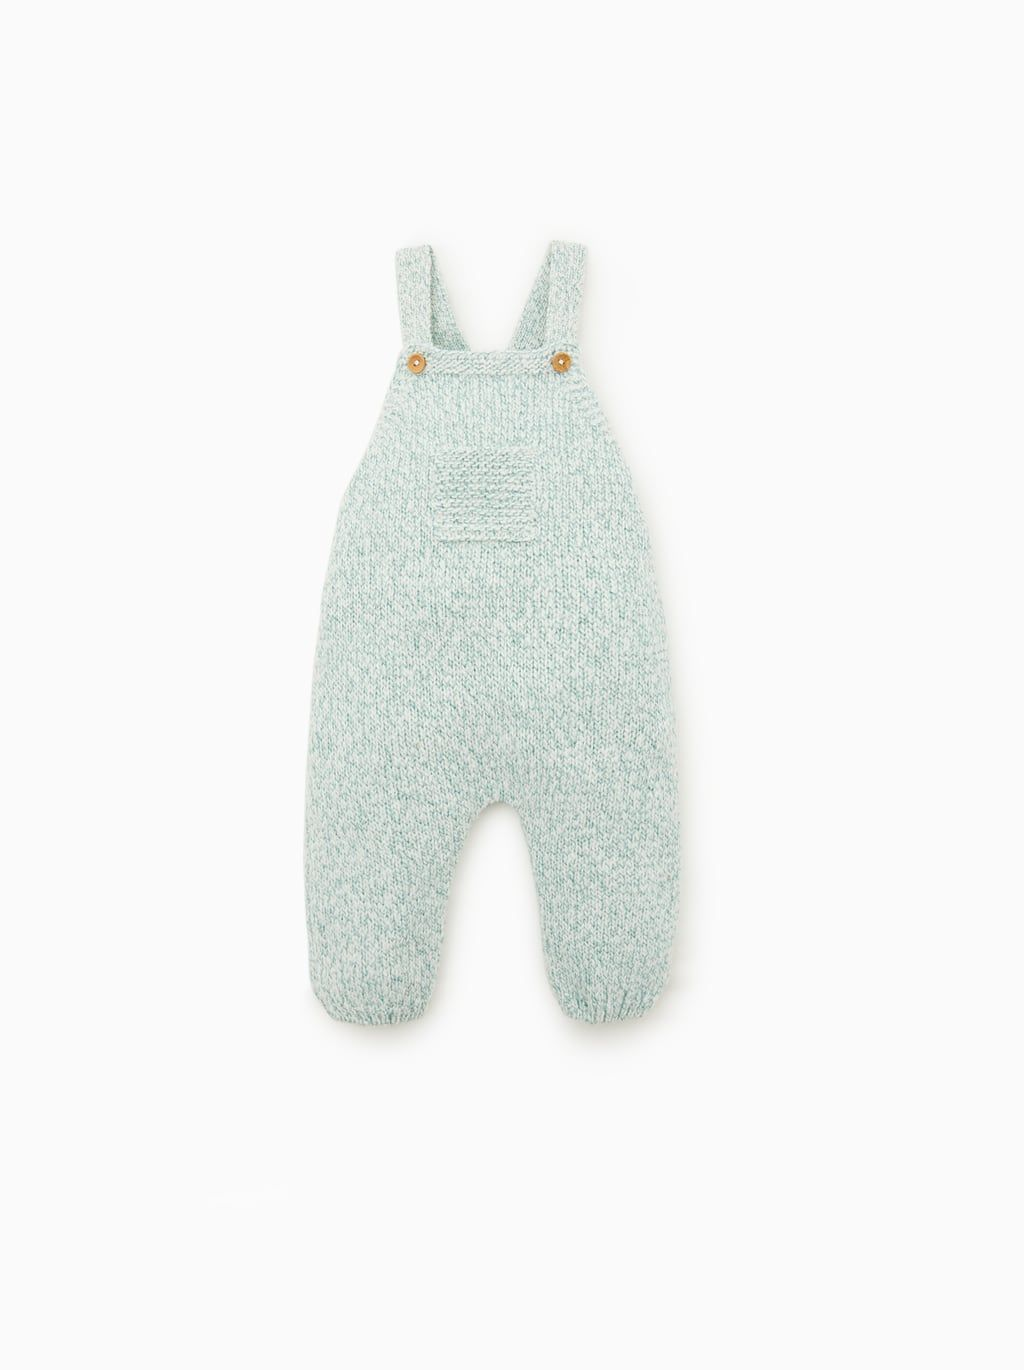 Blended knit overalls | Baby outfits newborn, Knitted baby ...